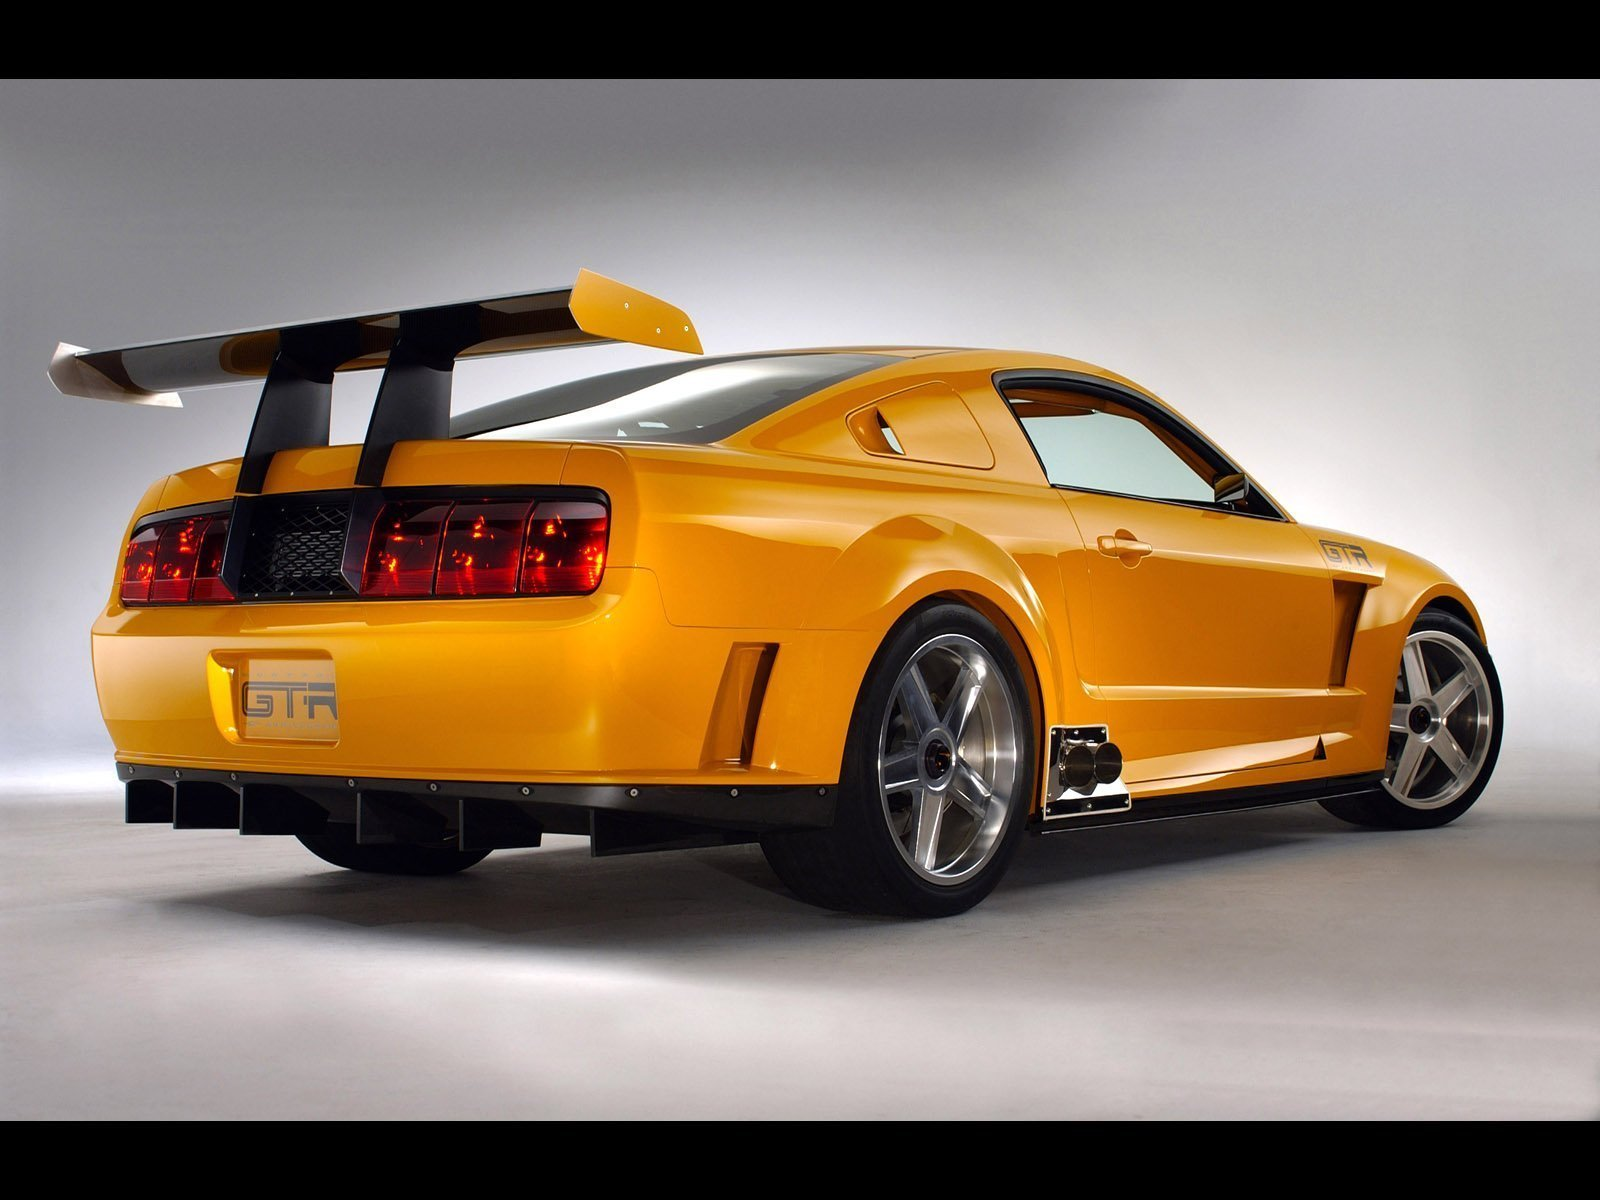 2005 saleen mustang gt r picture 27773 car review. Black Bedroom Furniture Sets. Home Design Ideas